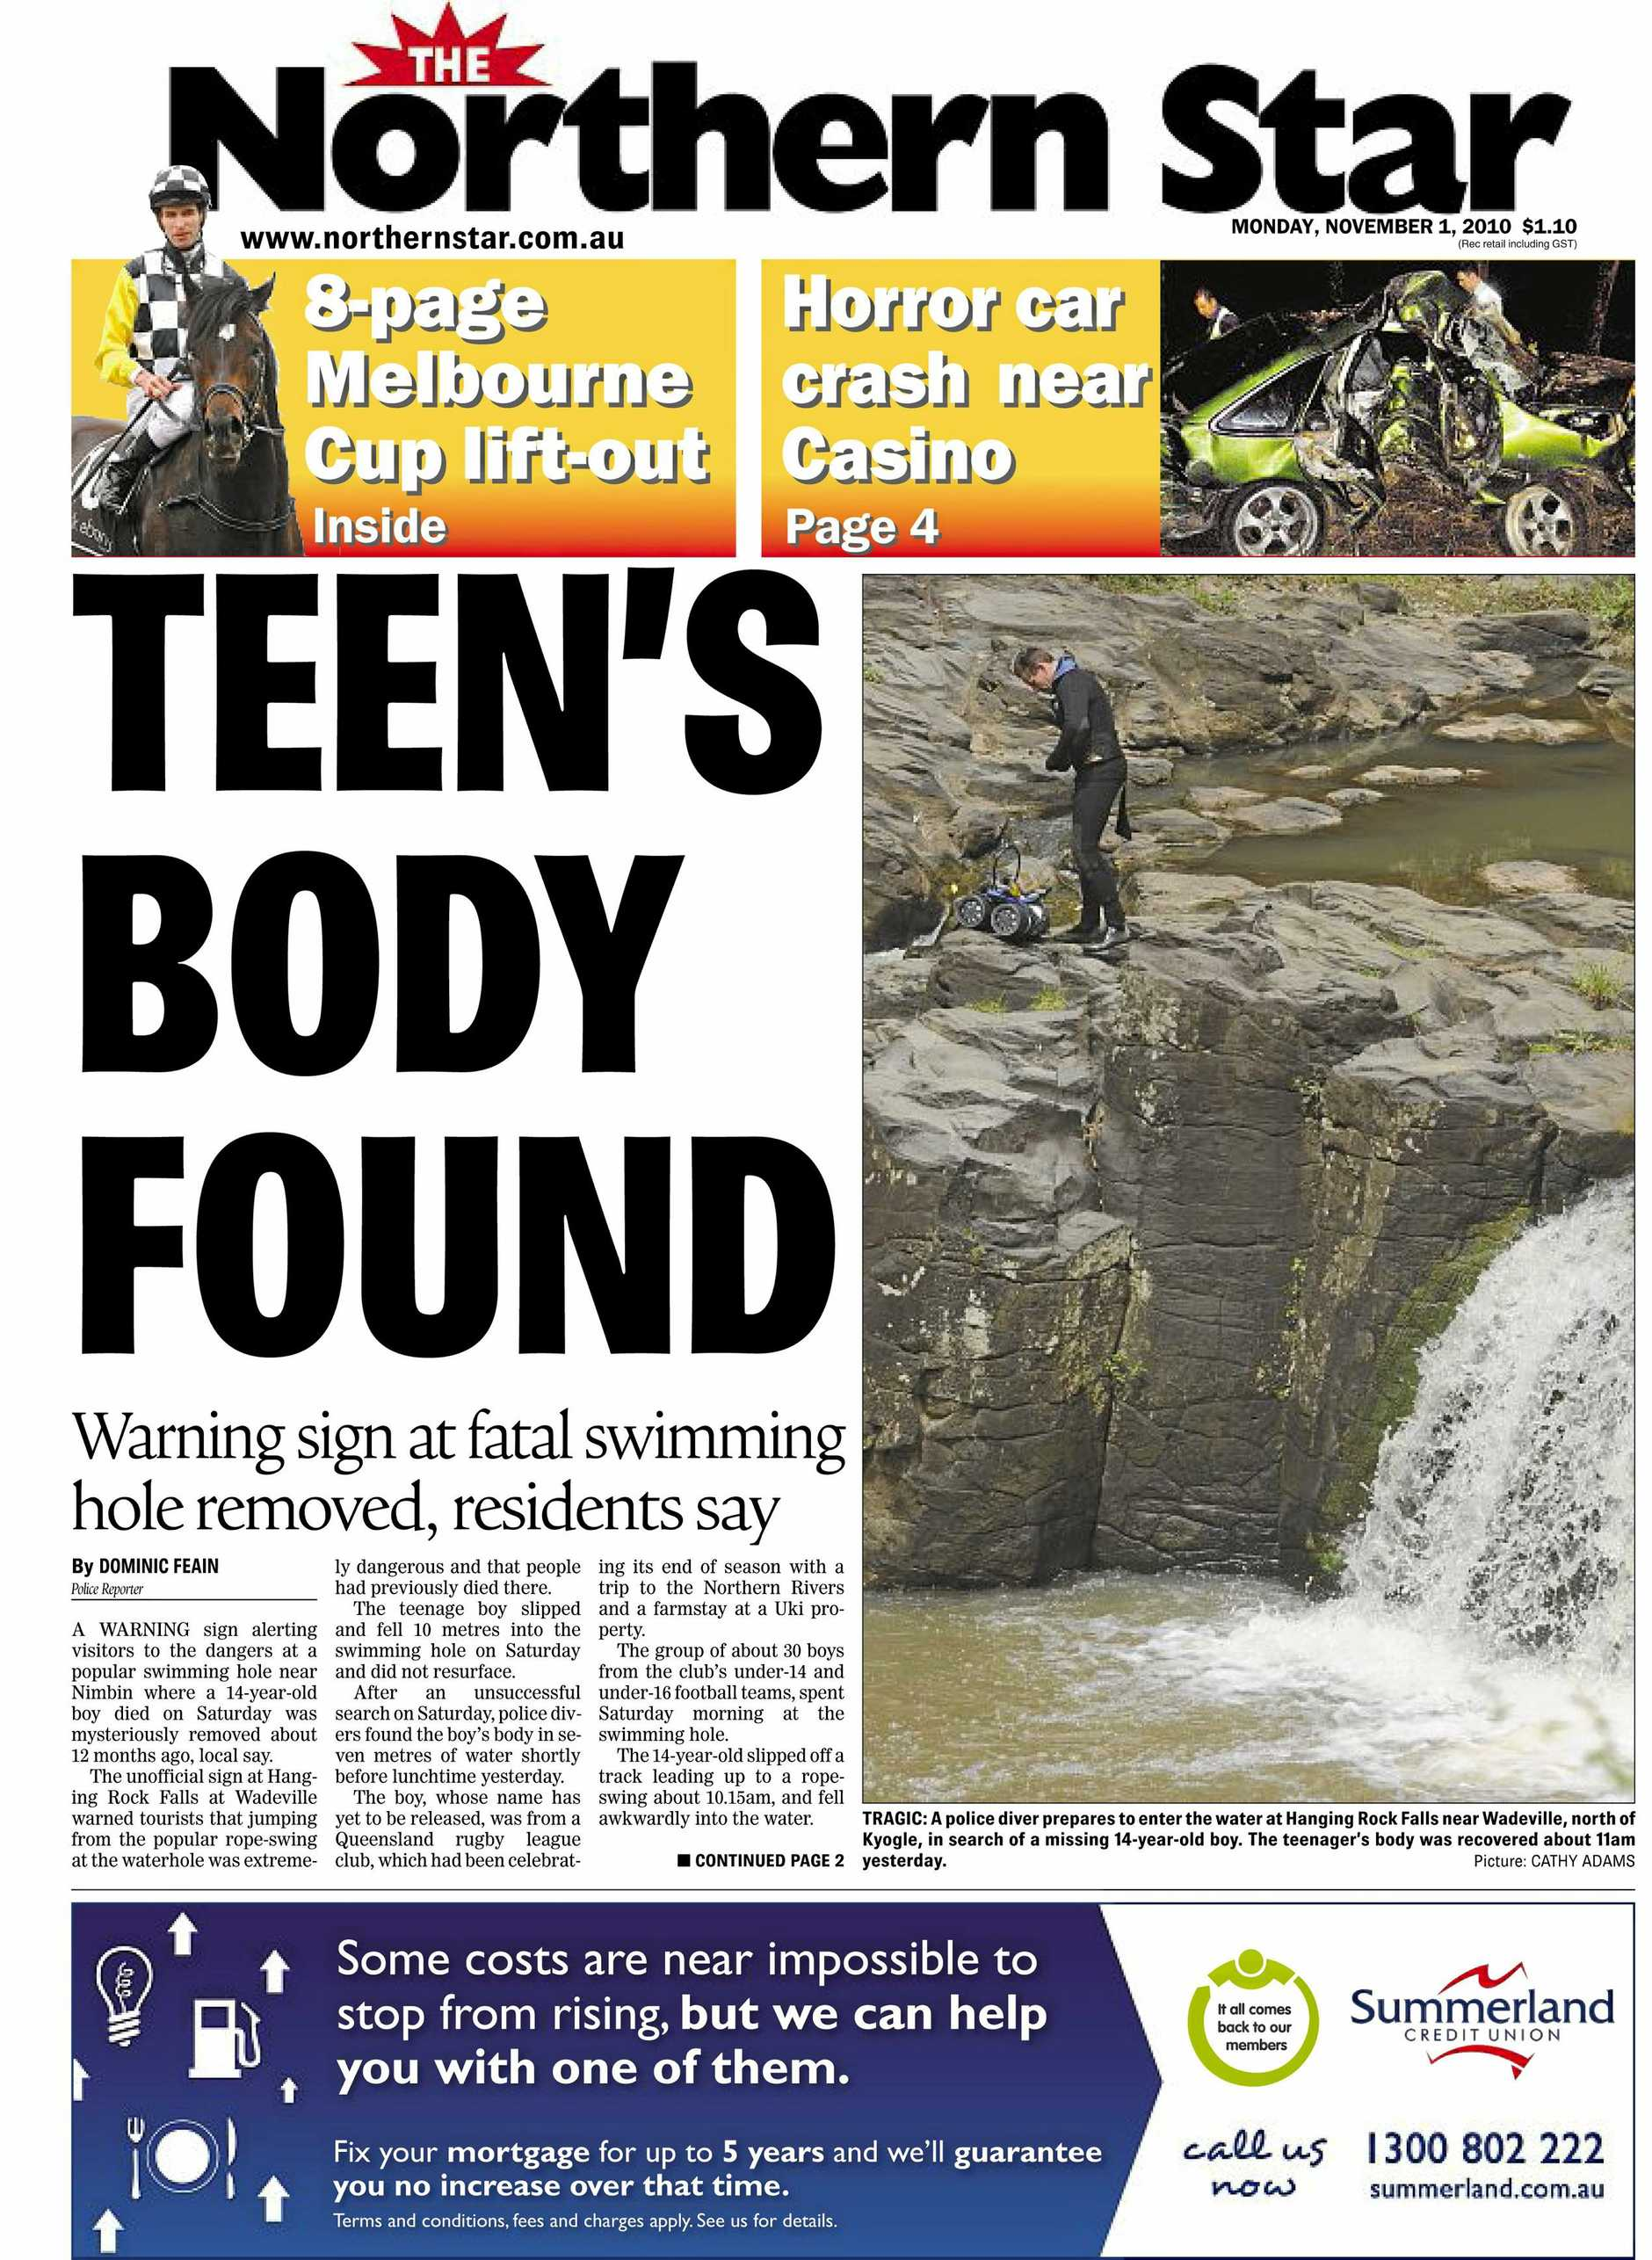 Northern Star tearsheet for Hanging Rock Falls near Nimbin